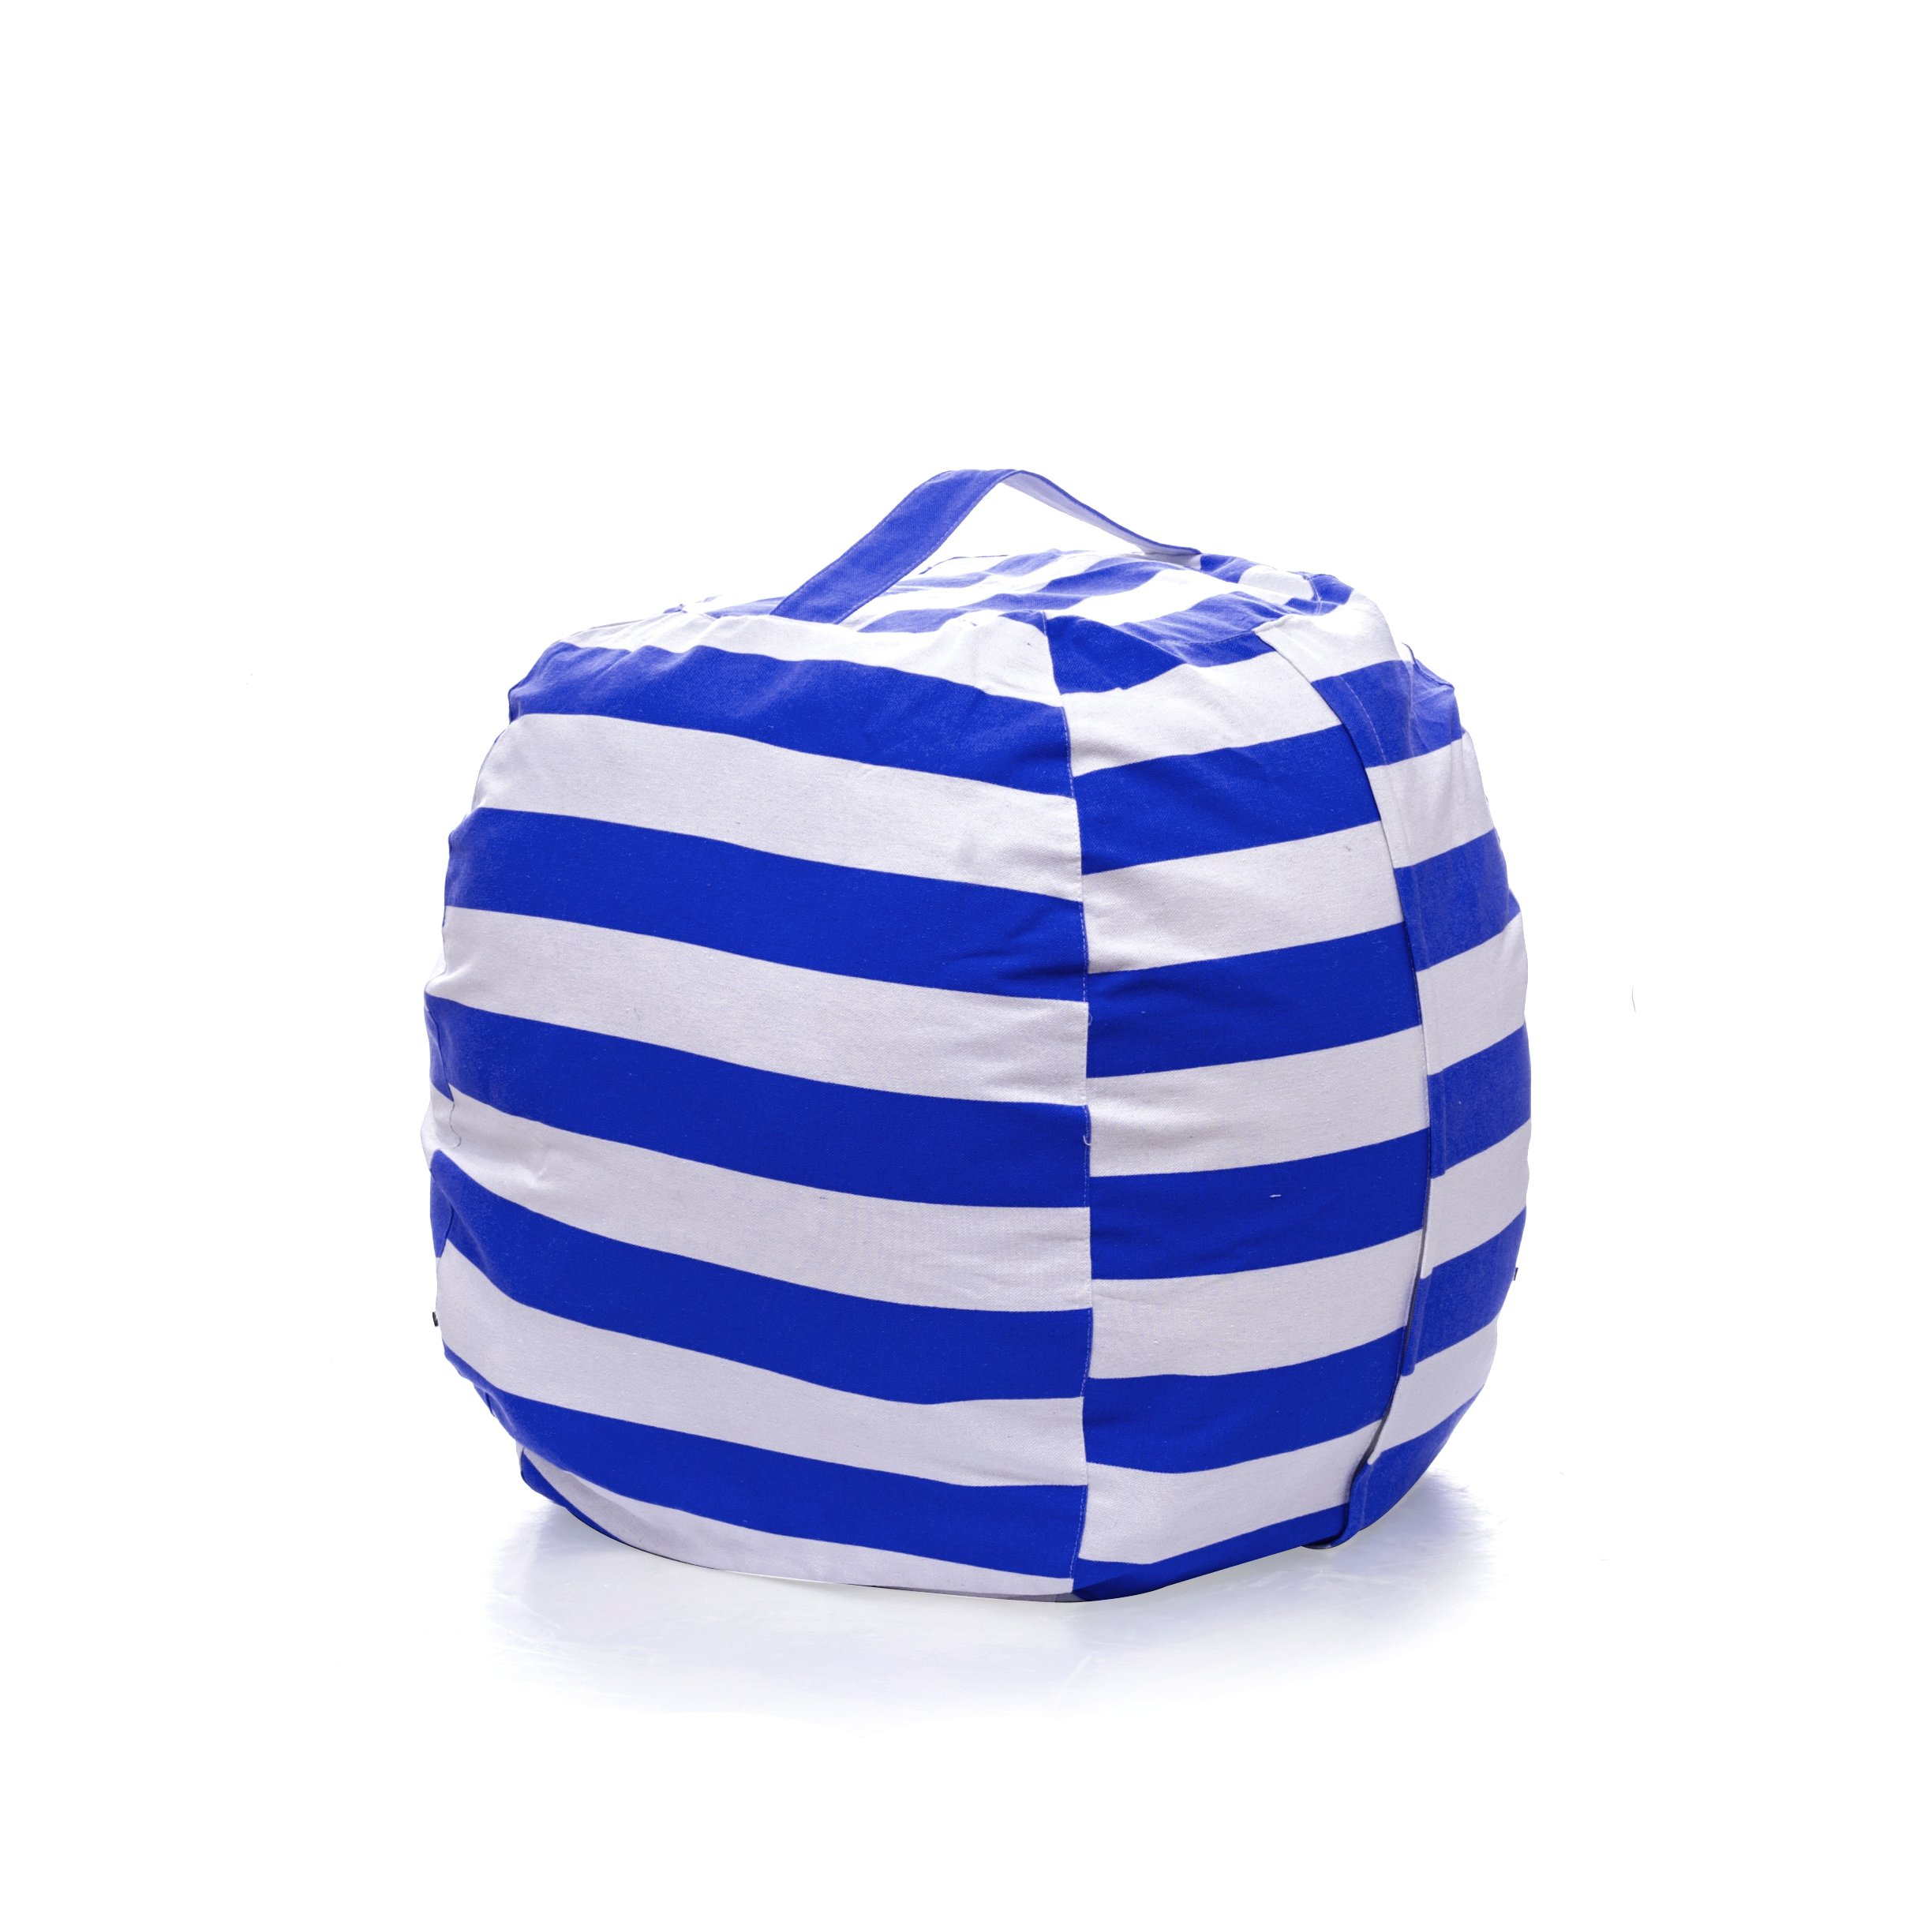 PJS-MAX Storage Bean Bag Chair for Kids - Stuffed Animal Chair Storage Bag, Jumbo Size Perfect for Soft Toys, Clothes, Blankets. 5 Colors Available (Navy Blue, Extra-large)